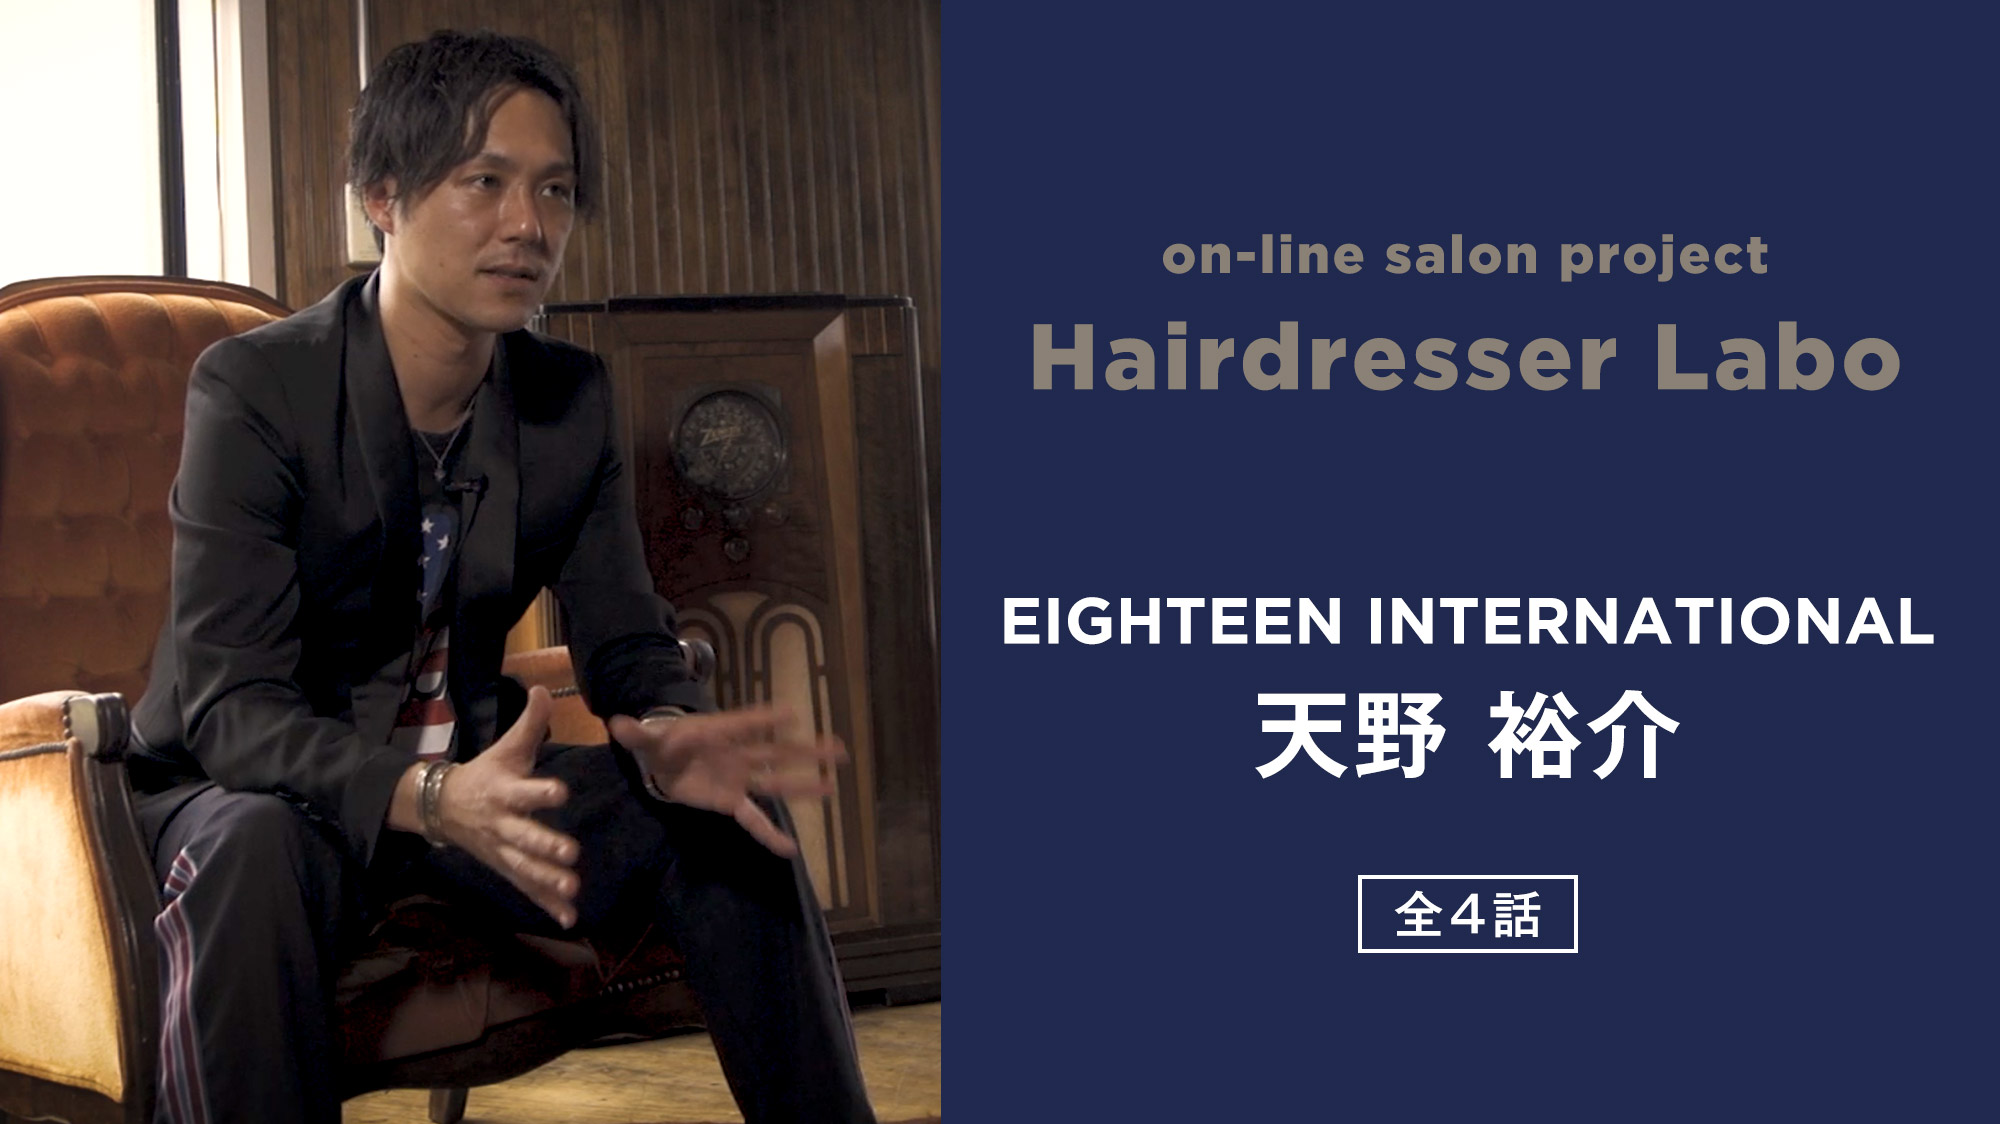 on-line salon project Hairdresser Labo『天野 裕介』 全4話